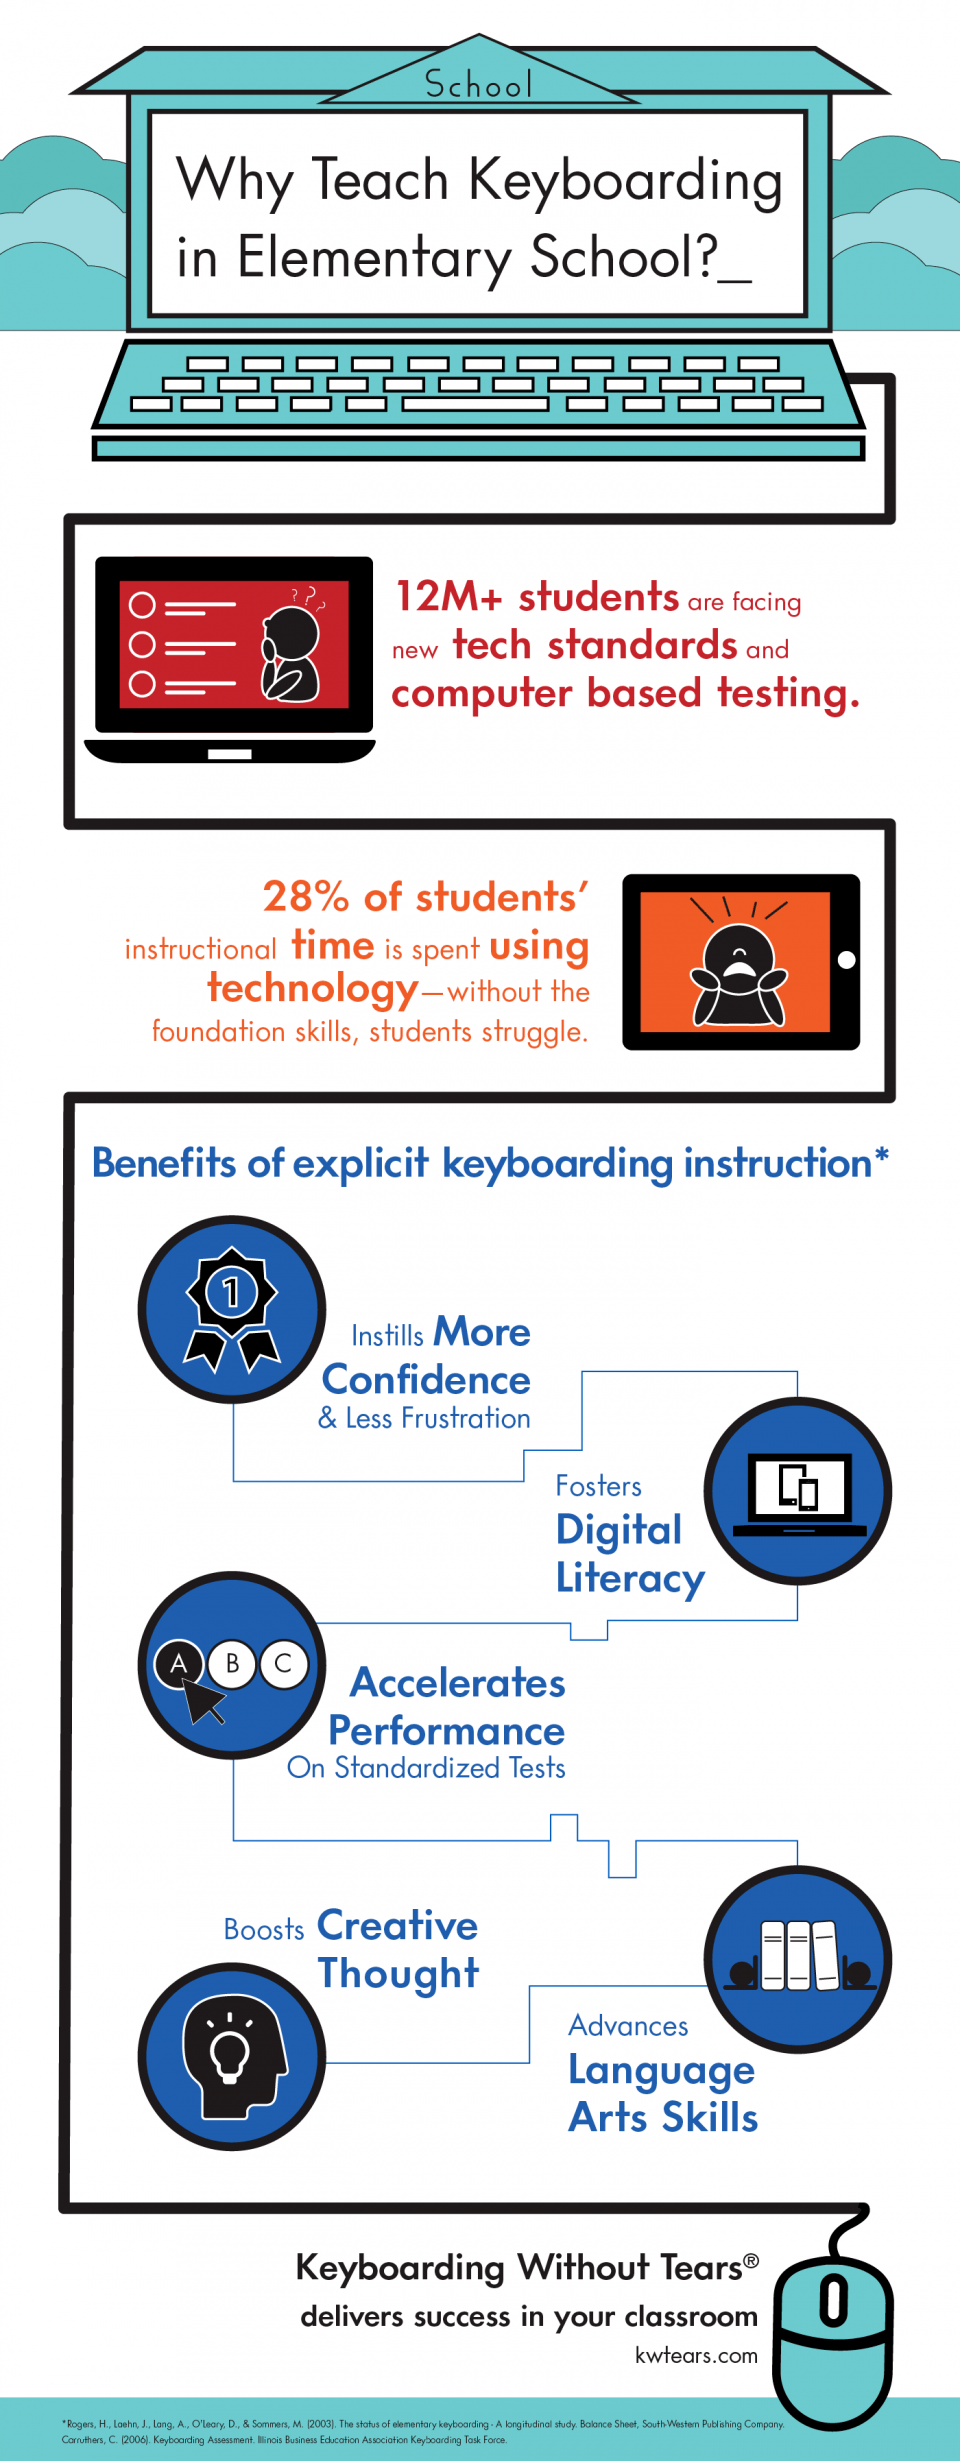 Why Teach Keyboarding in Elementary School Infographic